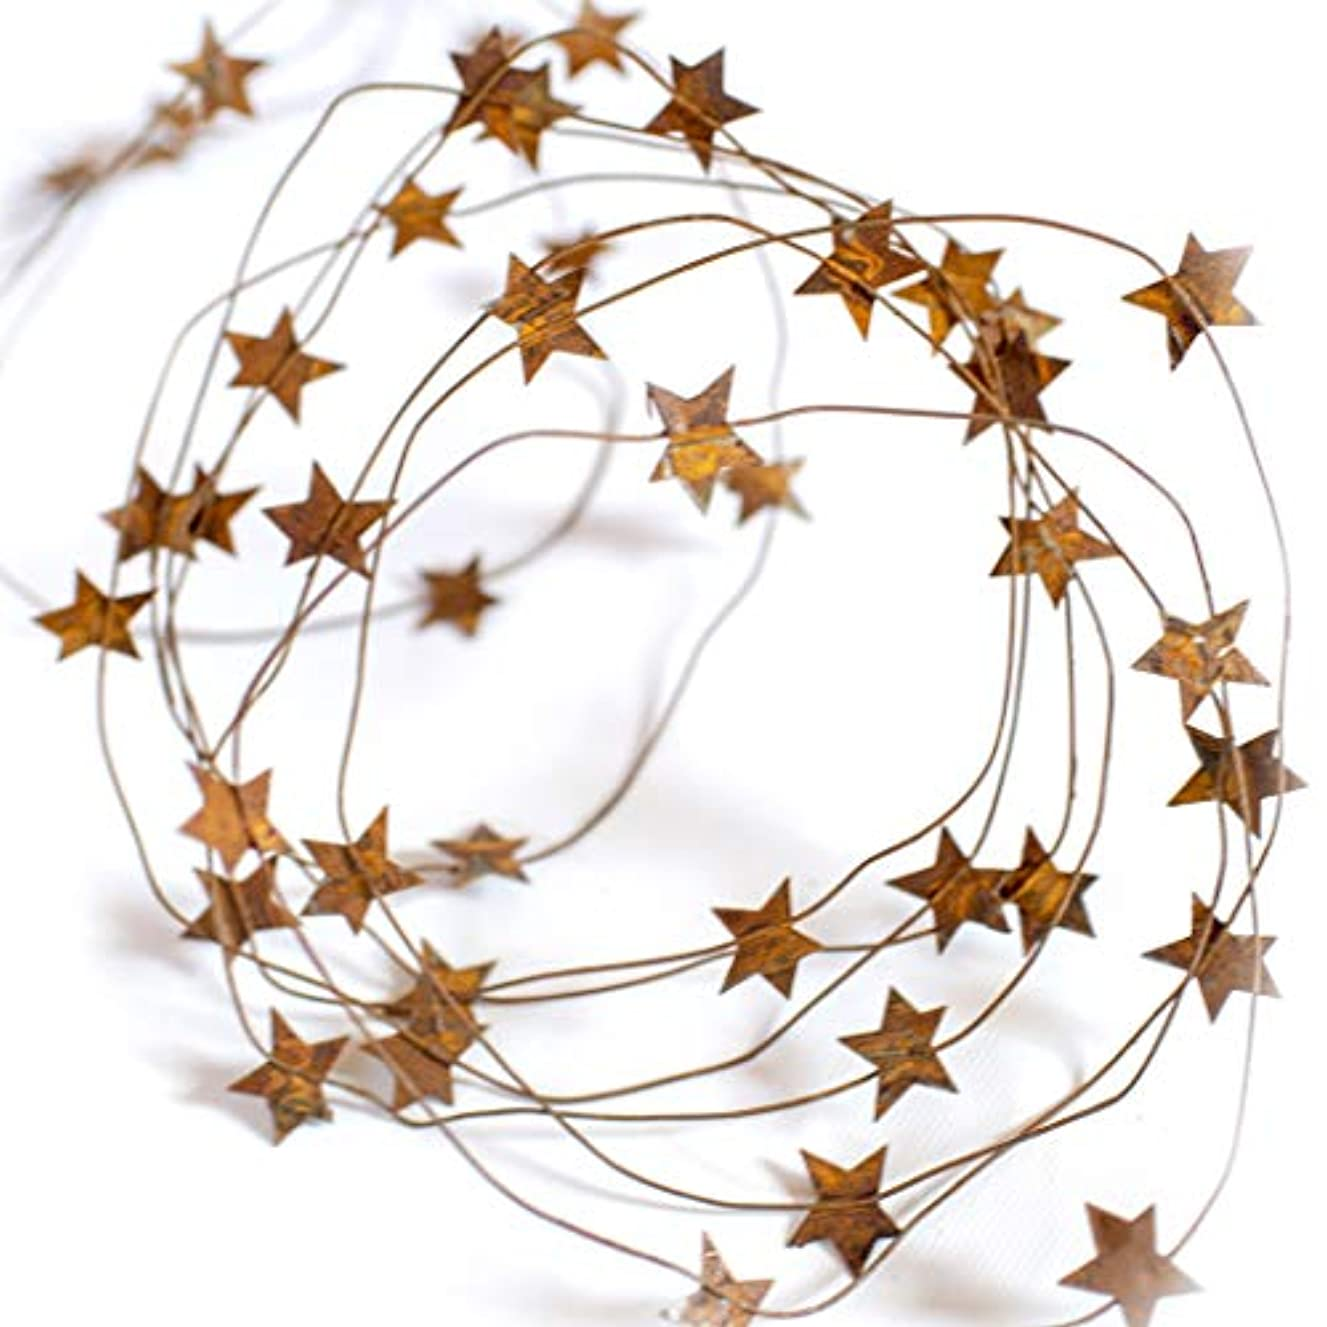 RUSTY TIN BARN STAR GARLAND - Extra long 24' metal rustic primitive country banner stars wire garland indoor outdoor light Christmas thanksgiving party decor. Great on mantle, tables, staircase, porch